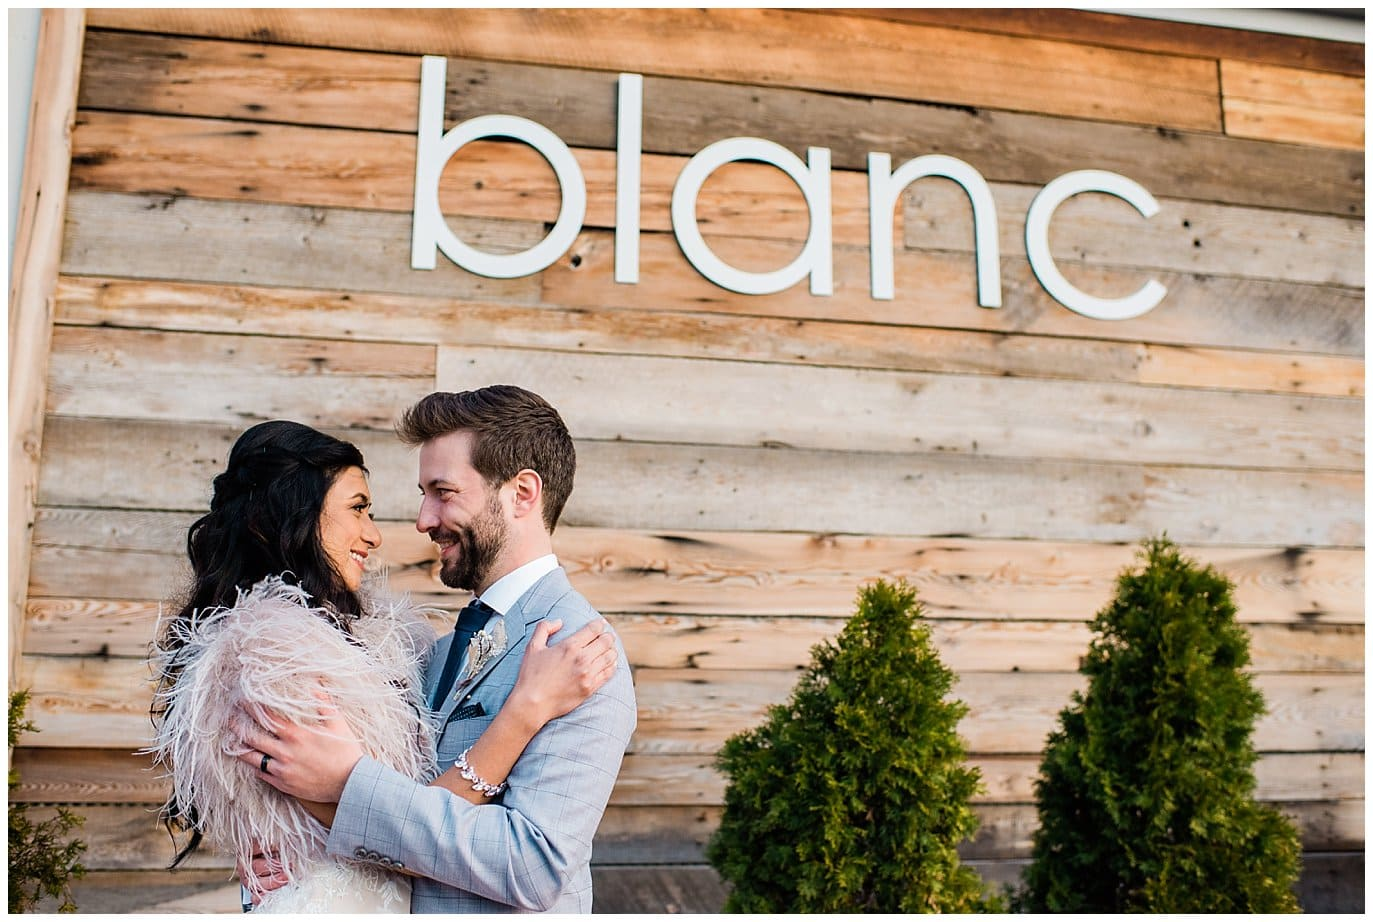 Bride and groom under blanc sign by Blanc Wedding Photographer Jennie Crate